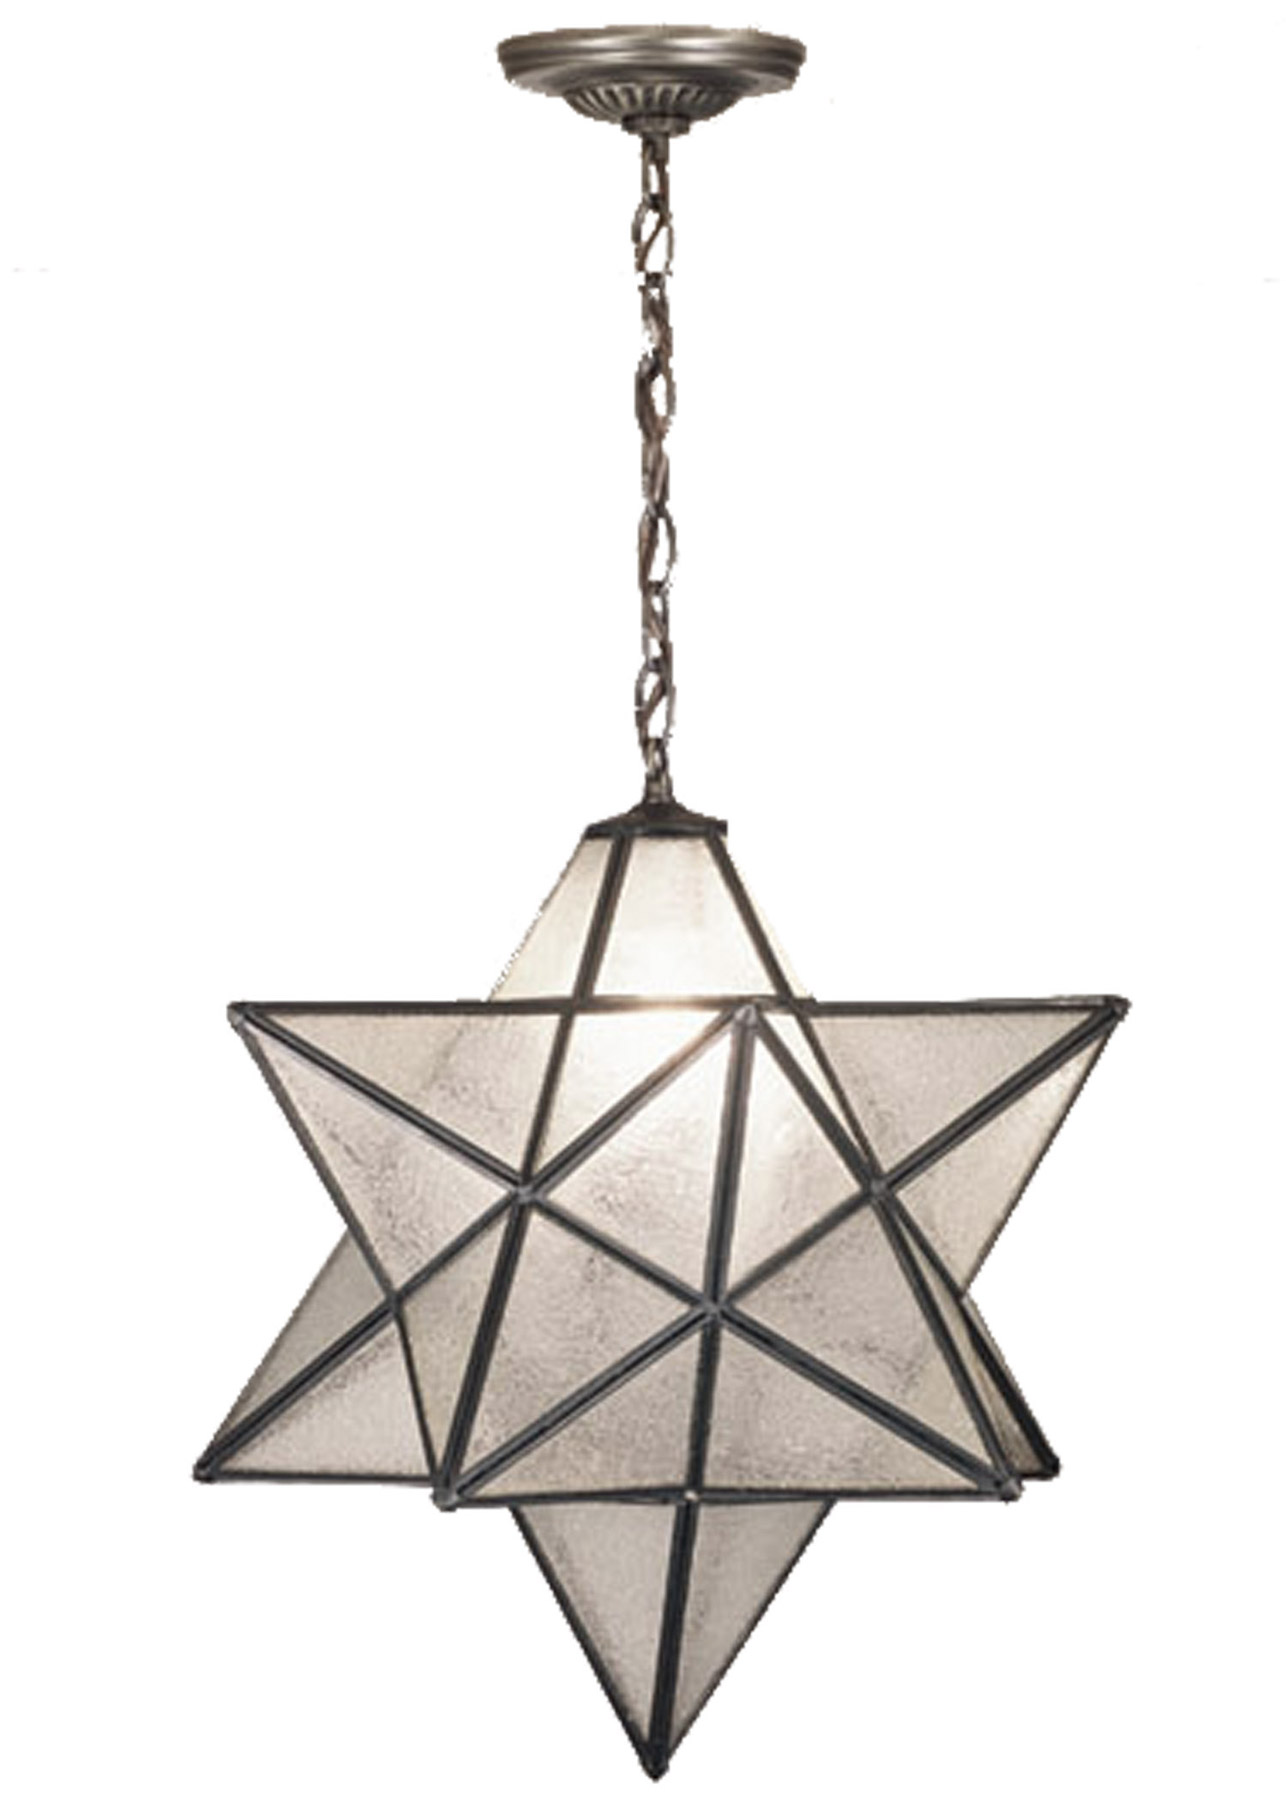 21211 moravian star pendant meyda 21211 moravian star pendant mozeypictures Choice Image